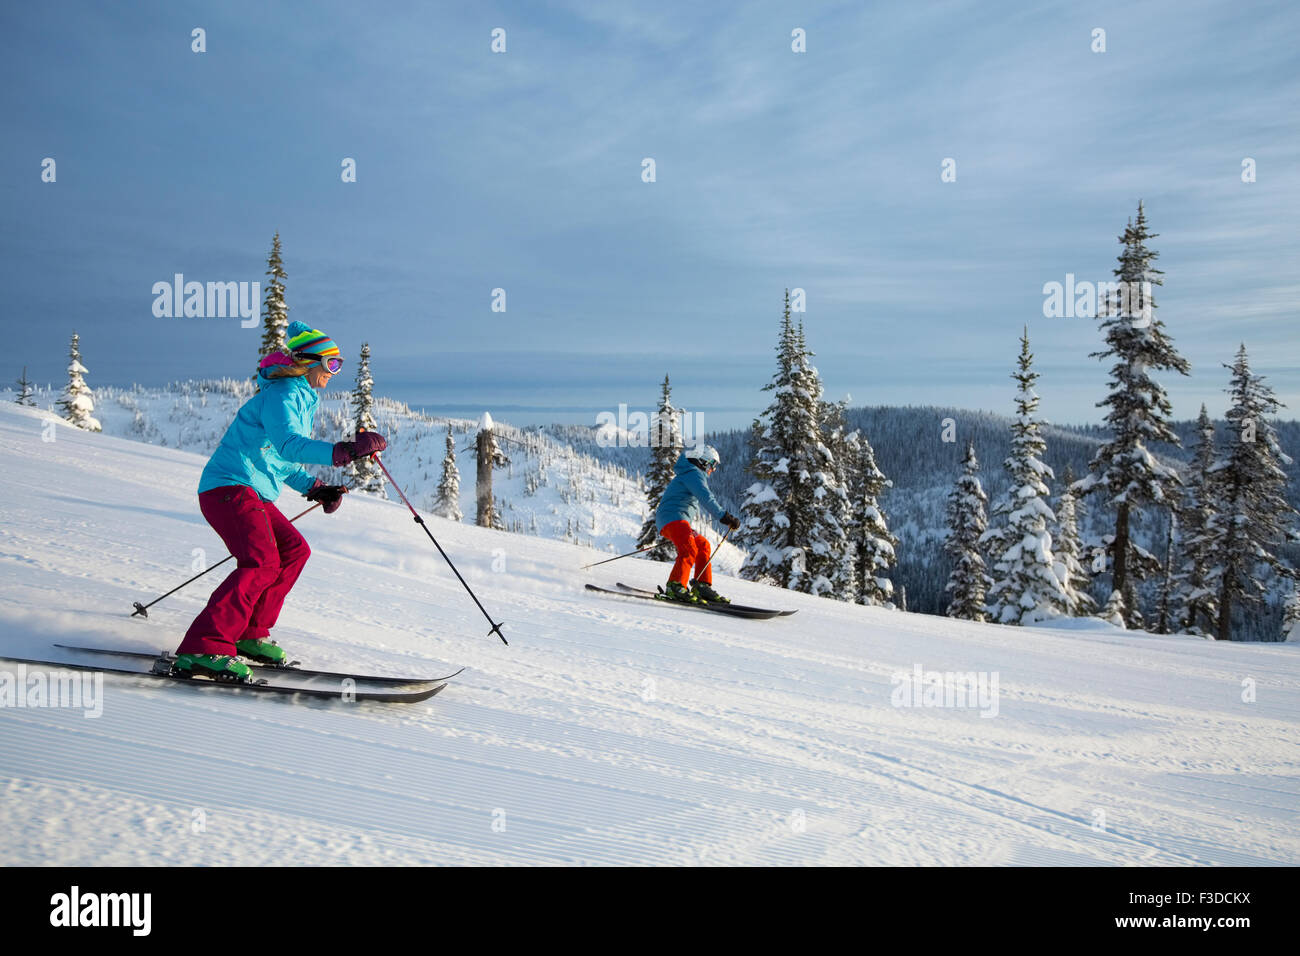 Side view of skiing couple - Stock Image